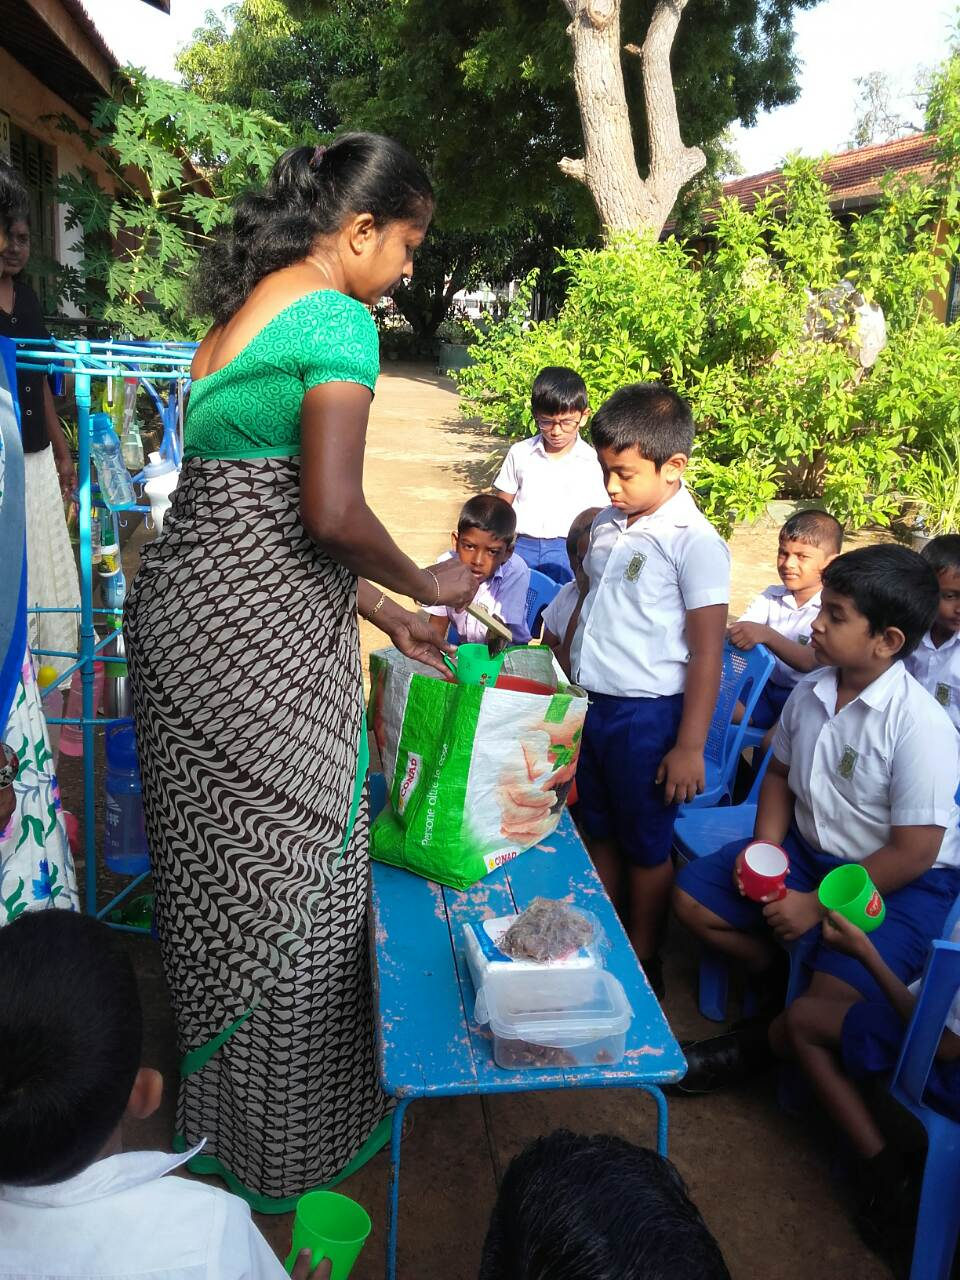 Determined to lead by example the teachers at the school strives to provide the students with a nutritious breakfast using sustainably grown produce from the school's garden